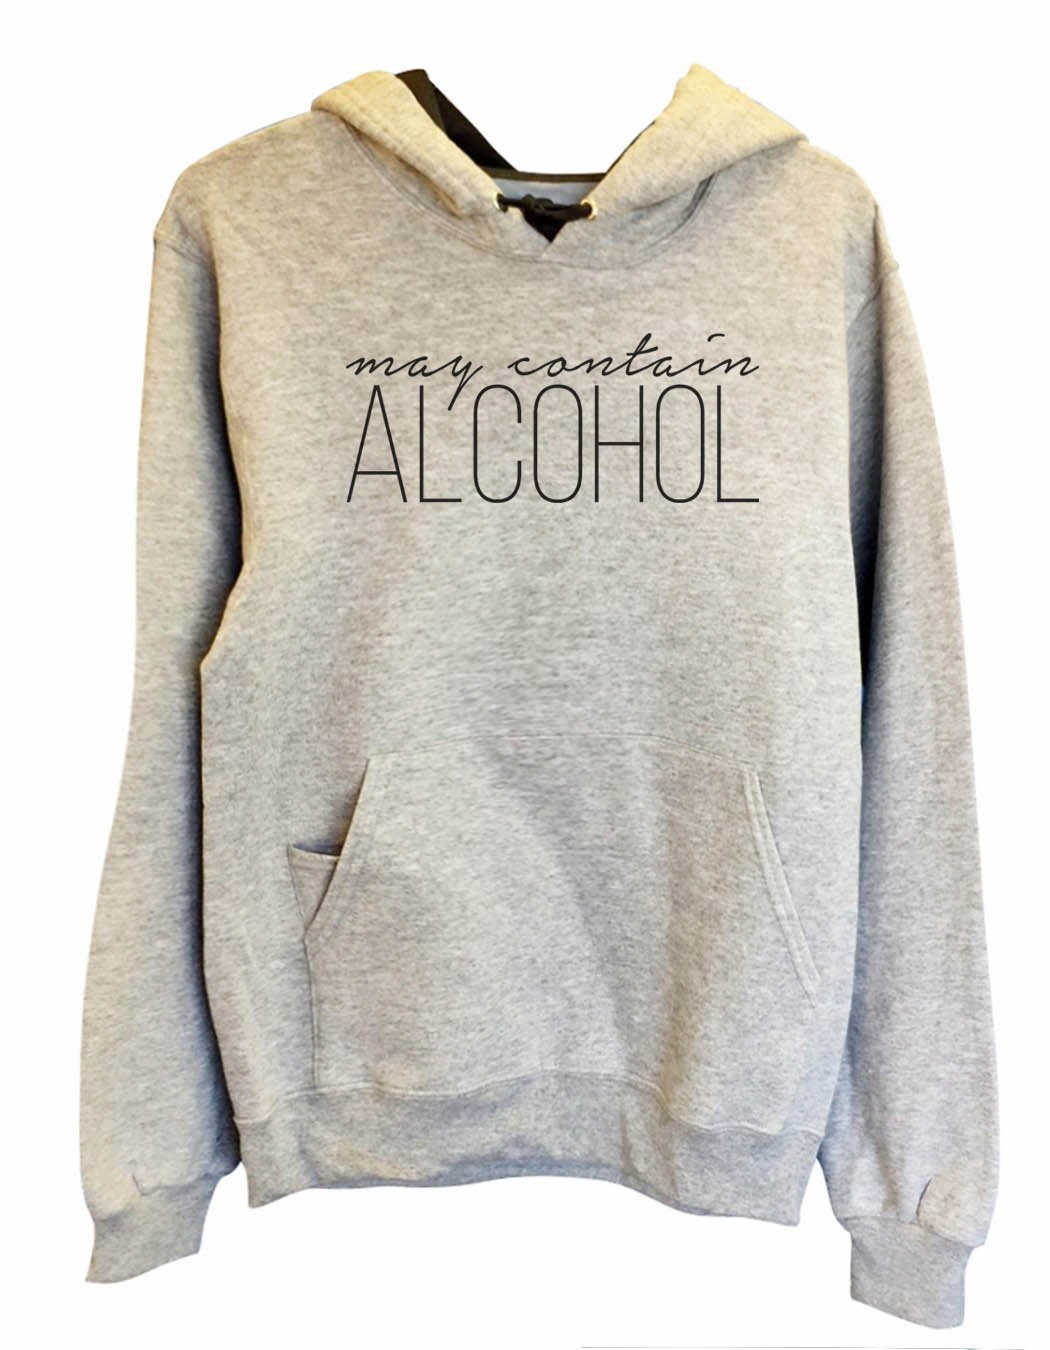 UNISEX HOODIE - May Contain Alcohol - FUNNY MENS AND WOMENS HOODED SWEATSHIRTS - 2165 Funny Shirt Small / Heather Grey